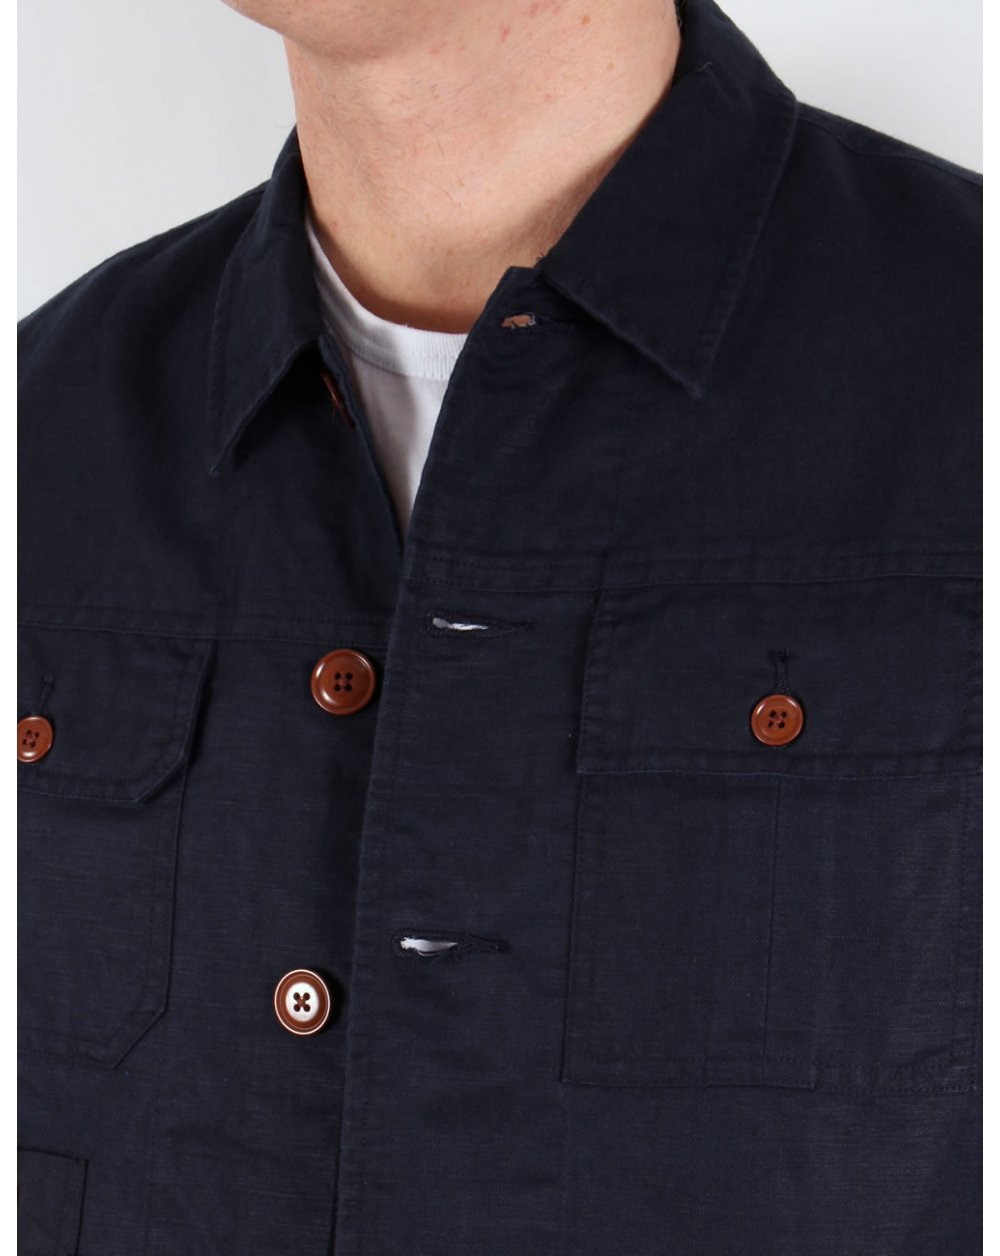 Mens Navy Blue Casual Shirts